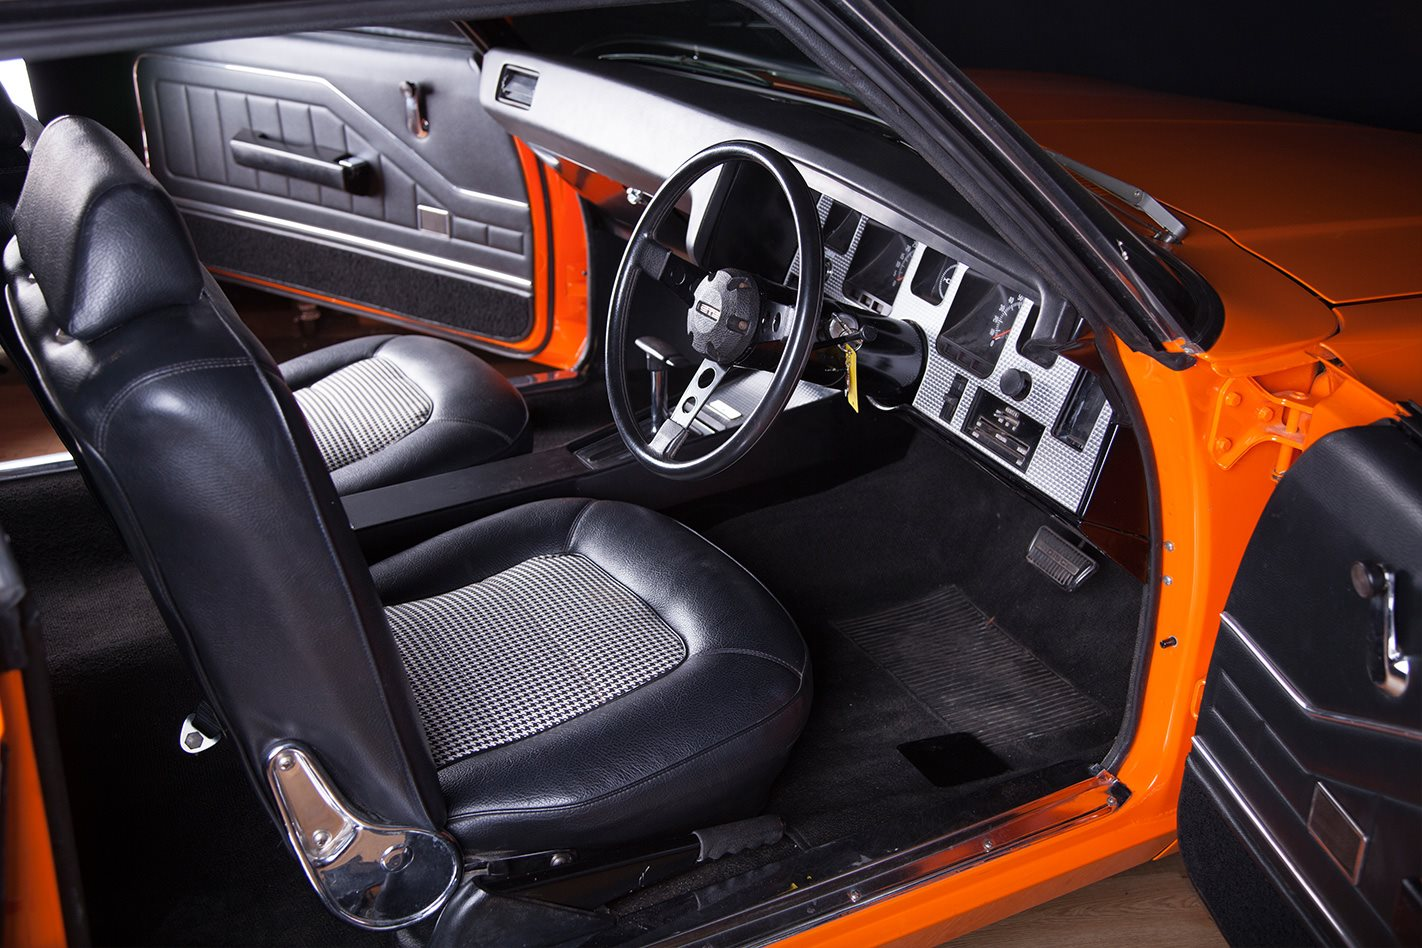 Holden HQ Monaro GTS interior